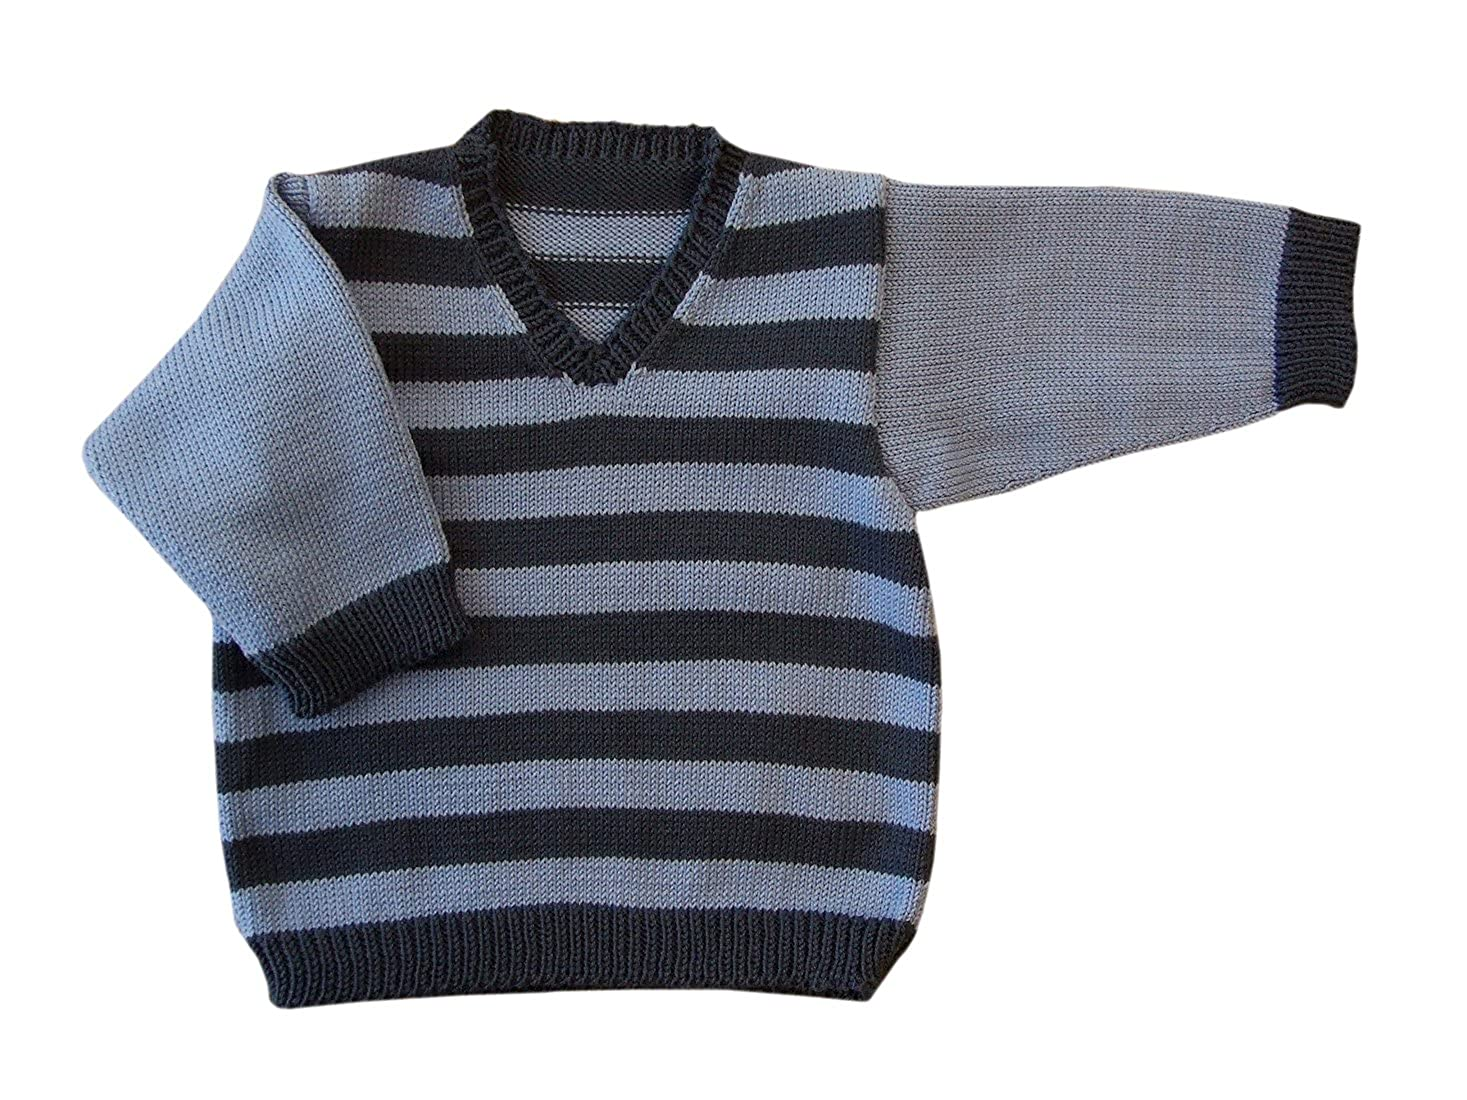 Amazon.com: 100% merino wool baby infant knitted sweater striped ...